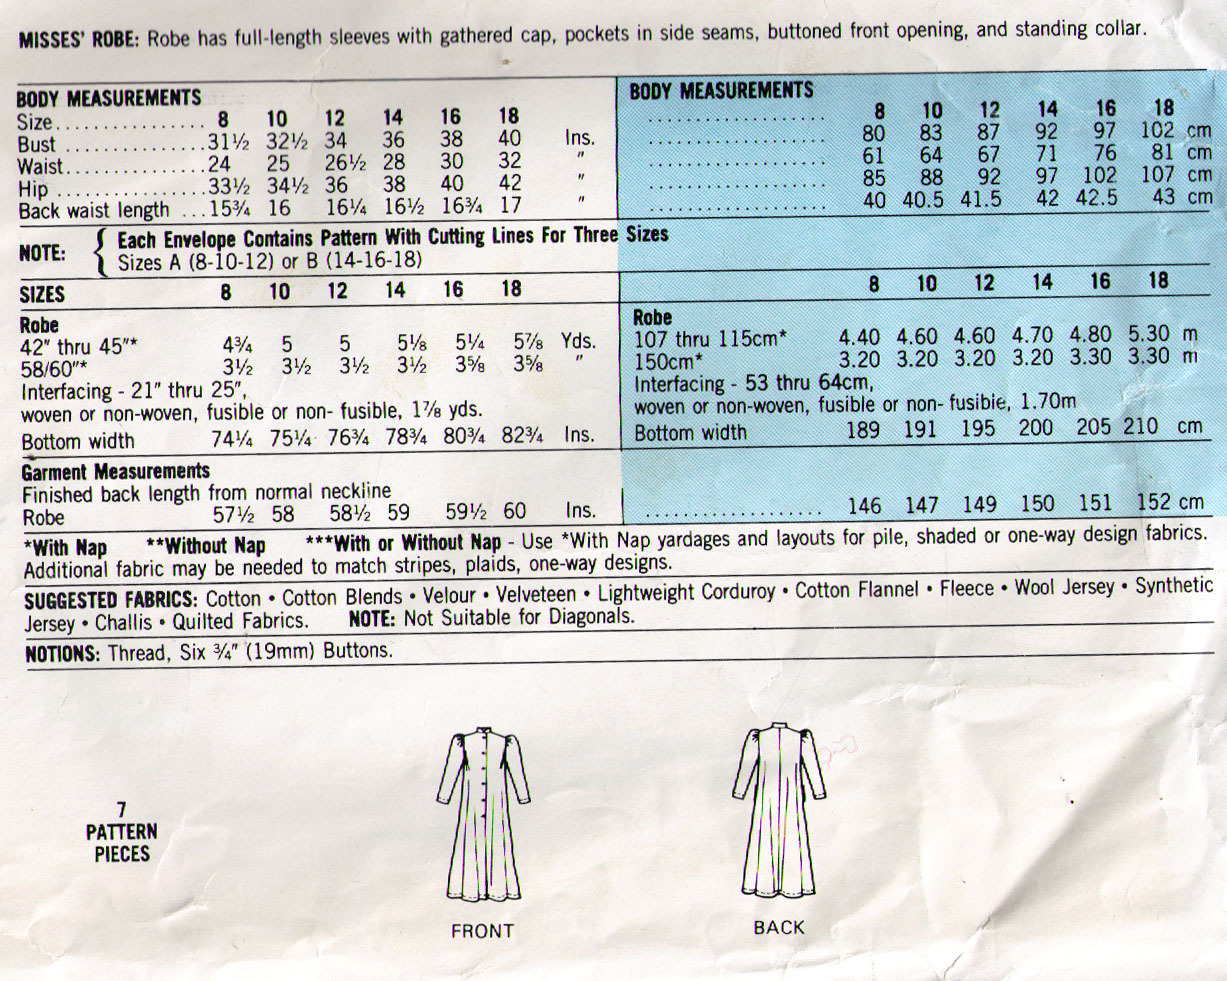 1982 ROBE Pattern 8272-m Size 8-10-12 - Complete